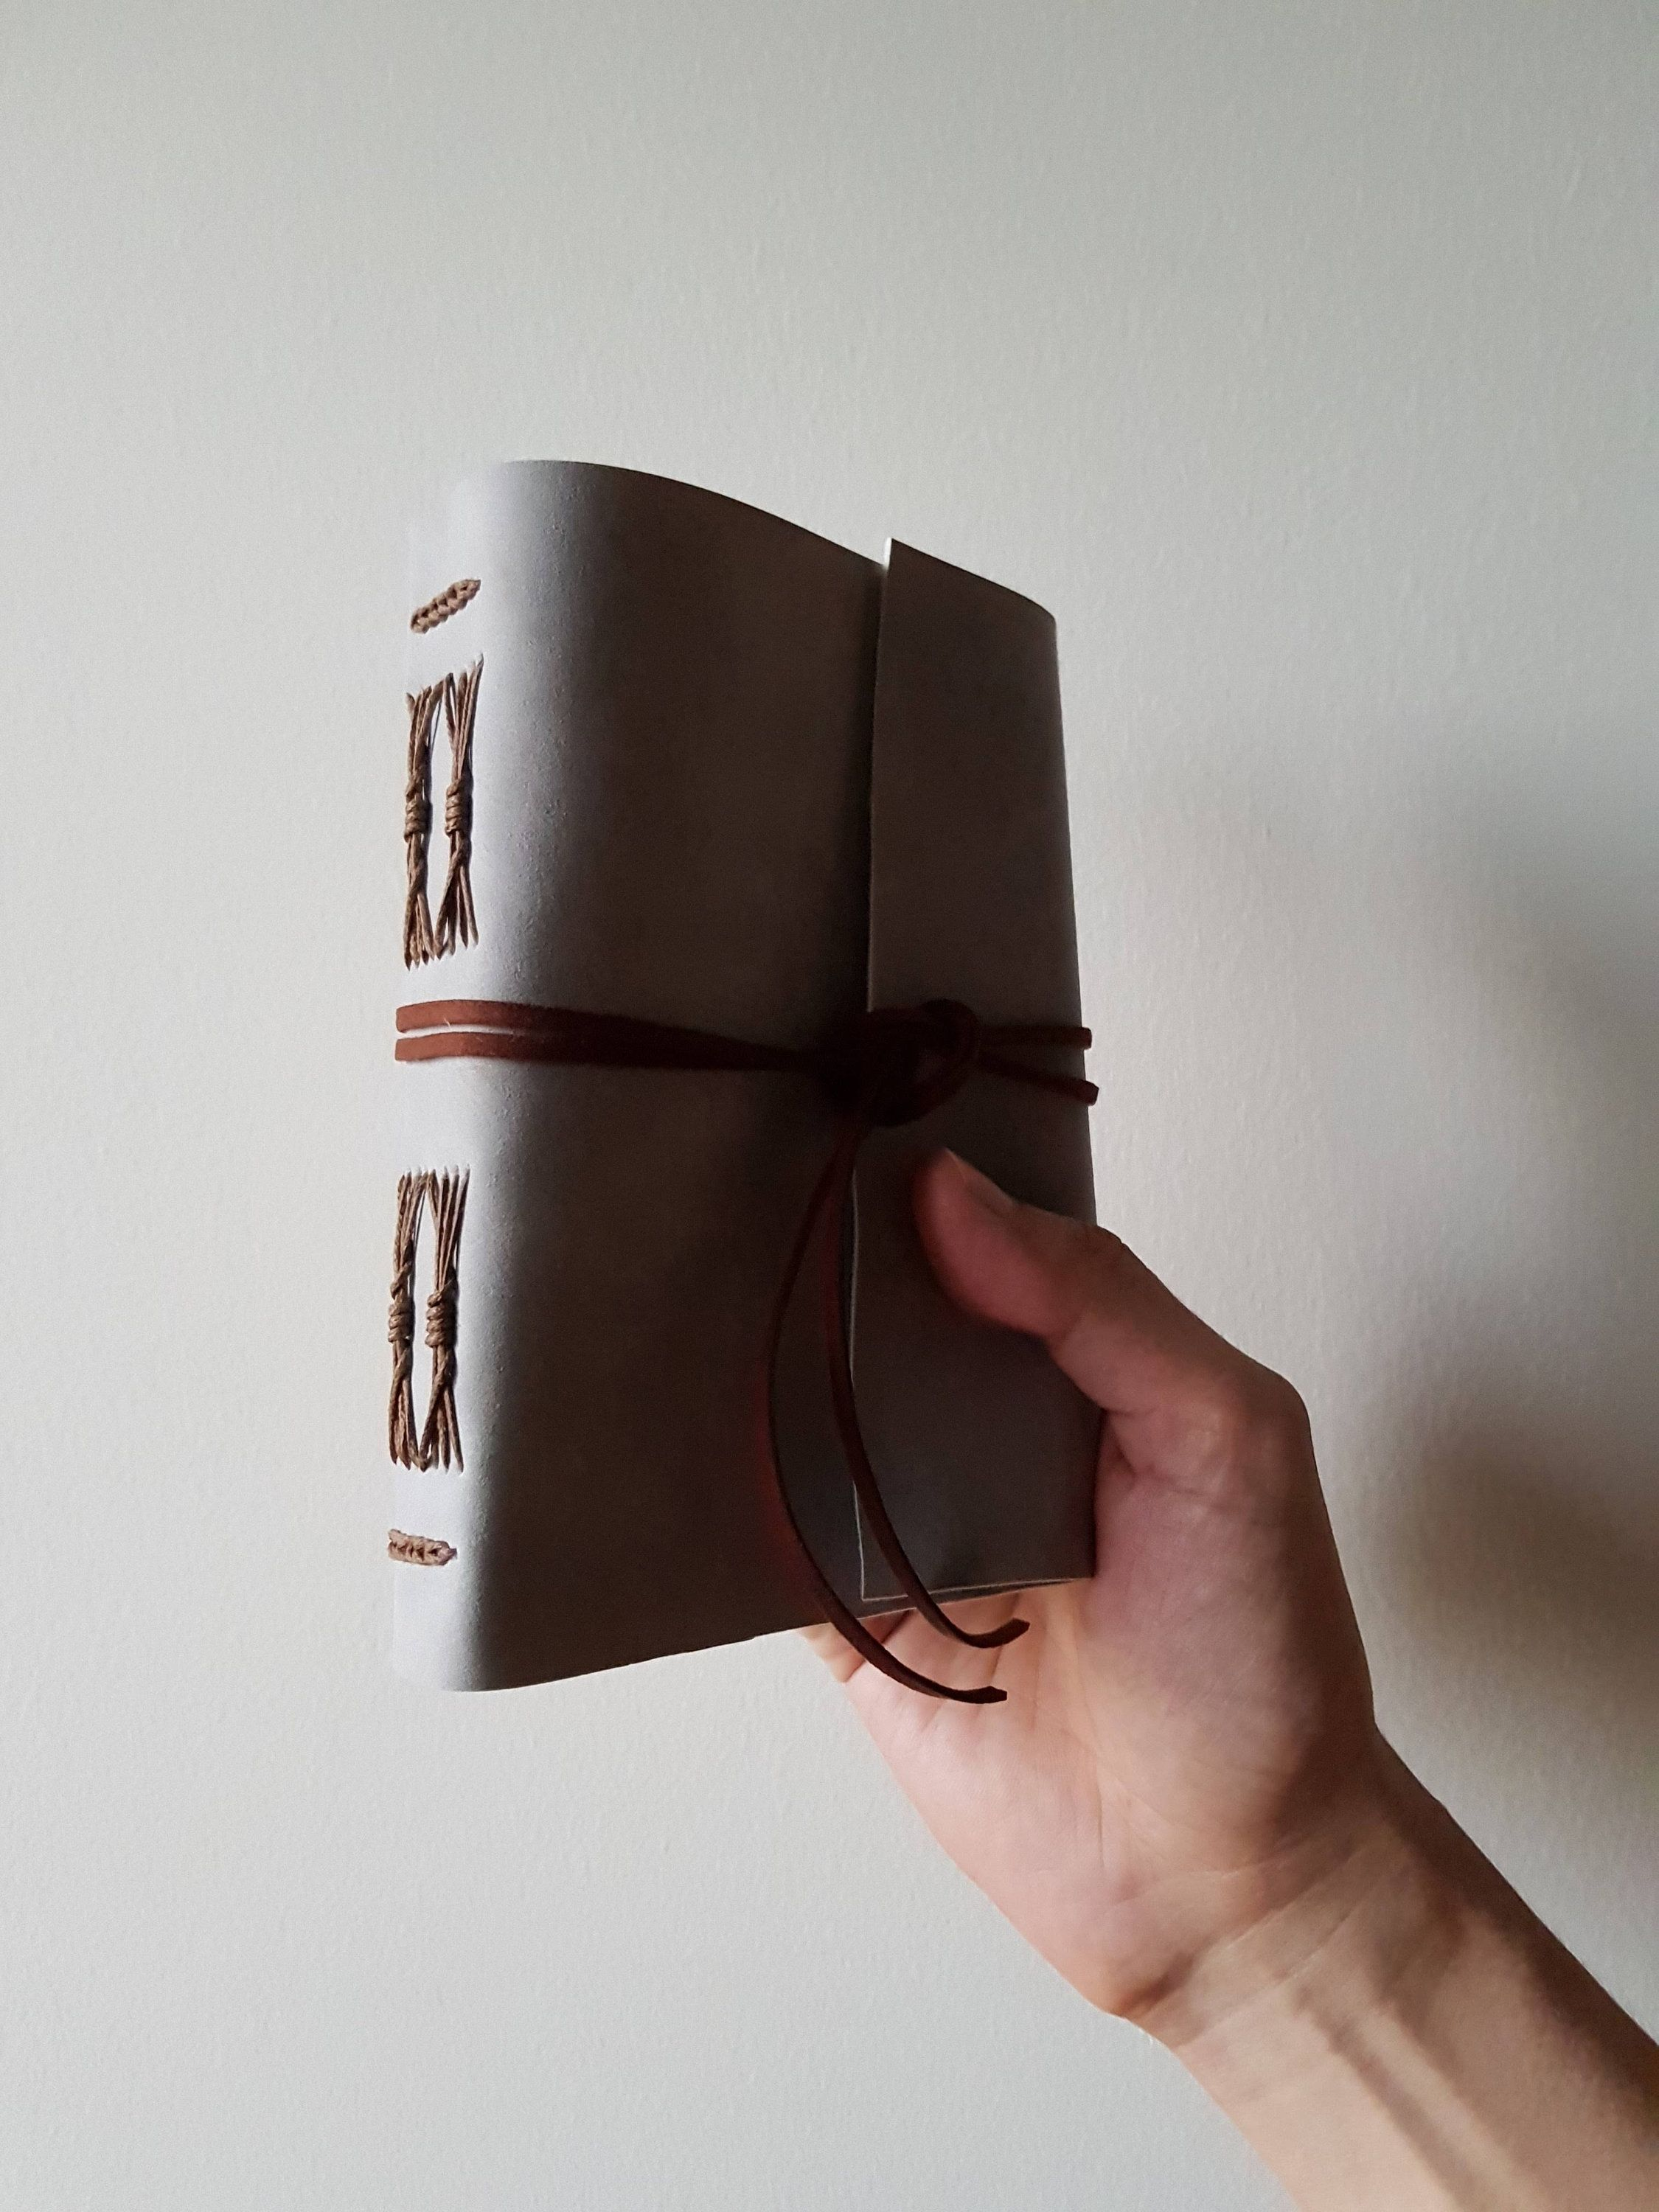 Bespoke Suede Fabric Journal Choose from 10 Suede Fabric